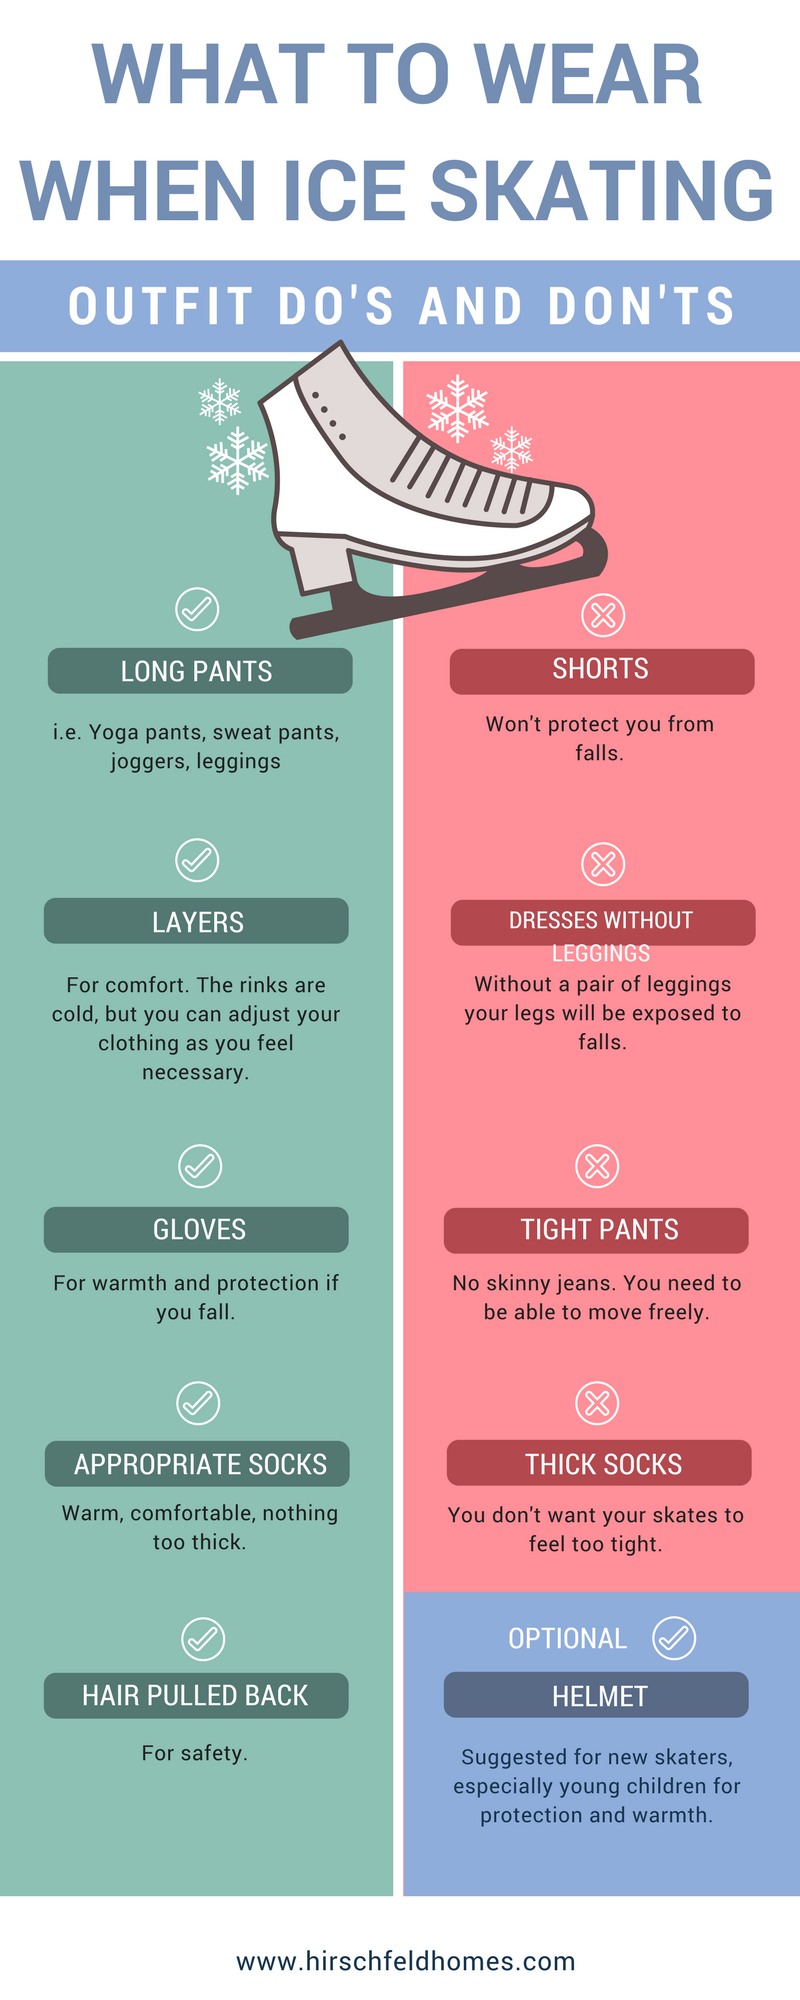 What to Wear When Ice Skating